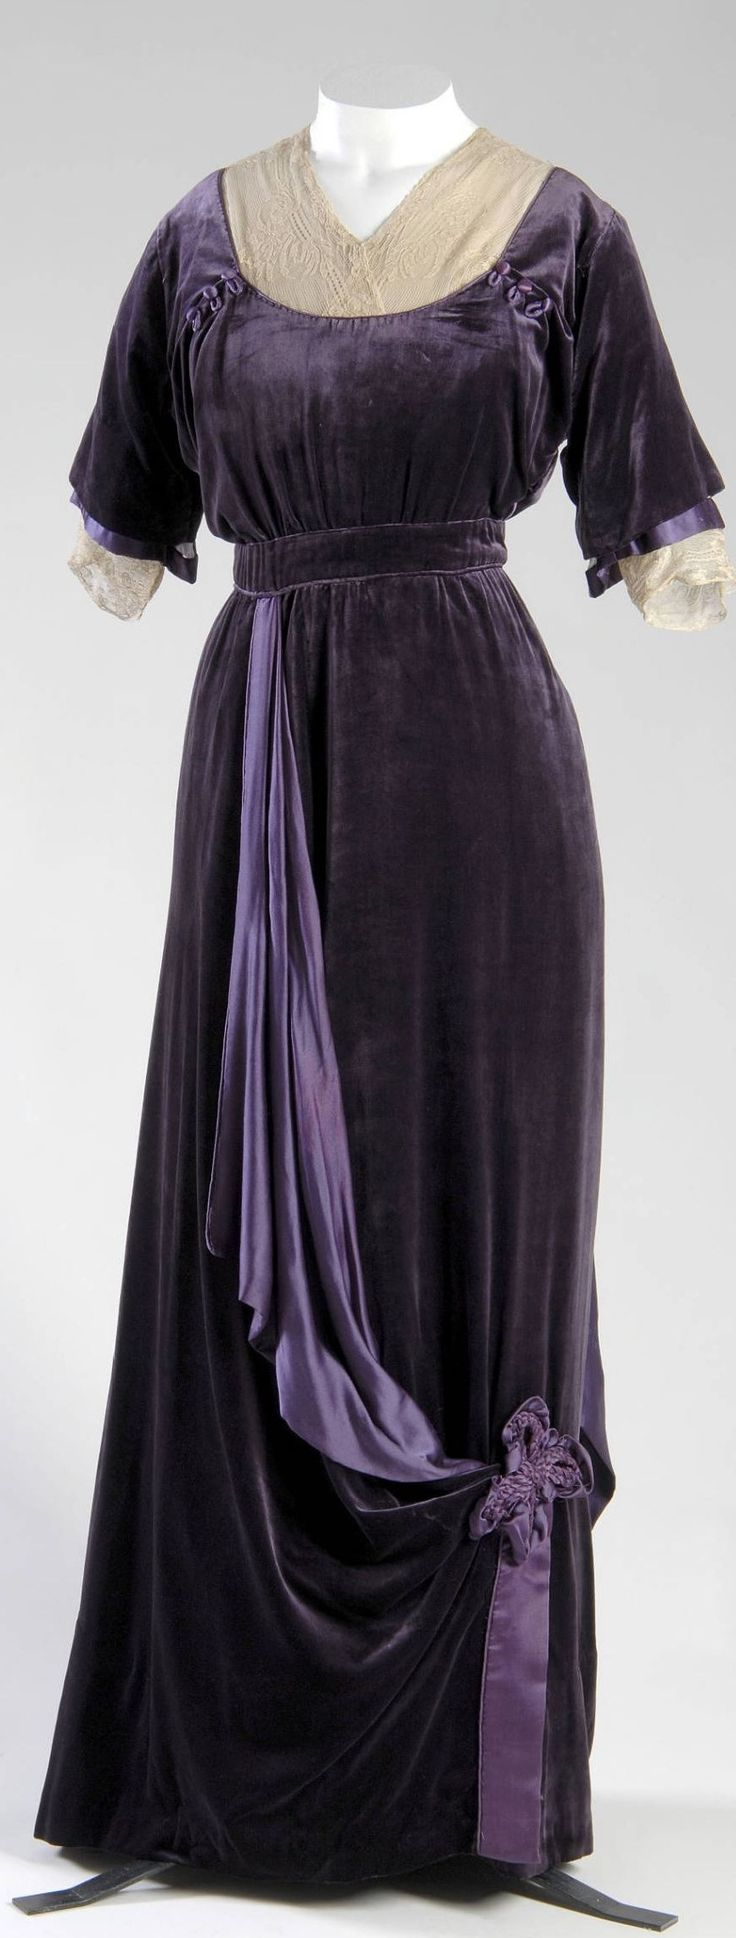 Afternoon Dress, Jeanne Paquin (1869-1936): 1910, French, silk velvet, silk satin, silk lace.